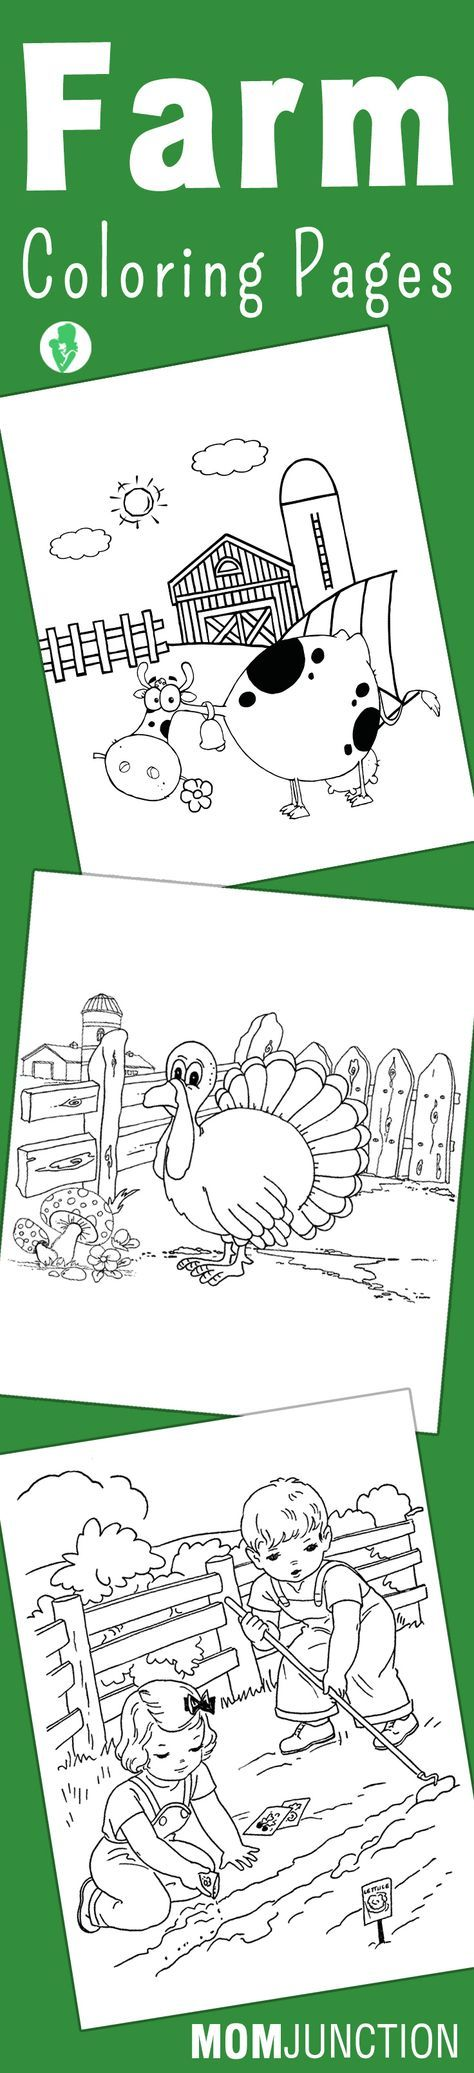 Best 20 Farm coloring pages ideas on Pinterest Kids pictures to